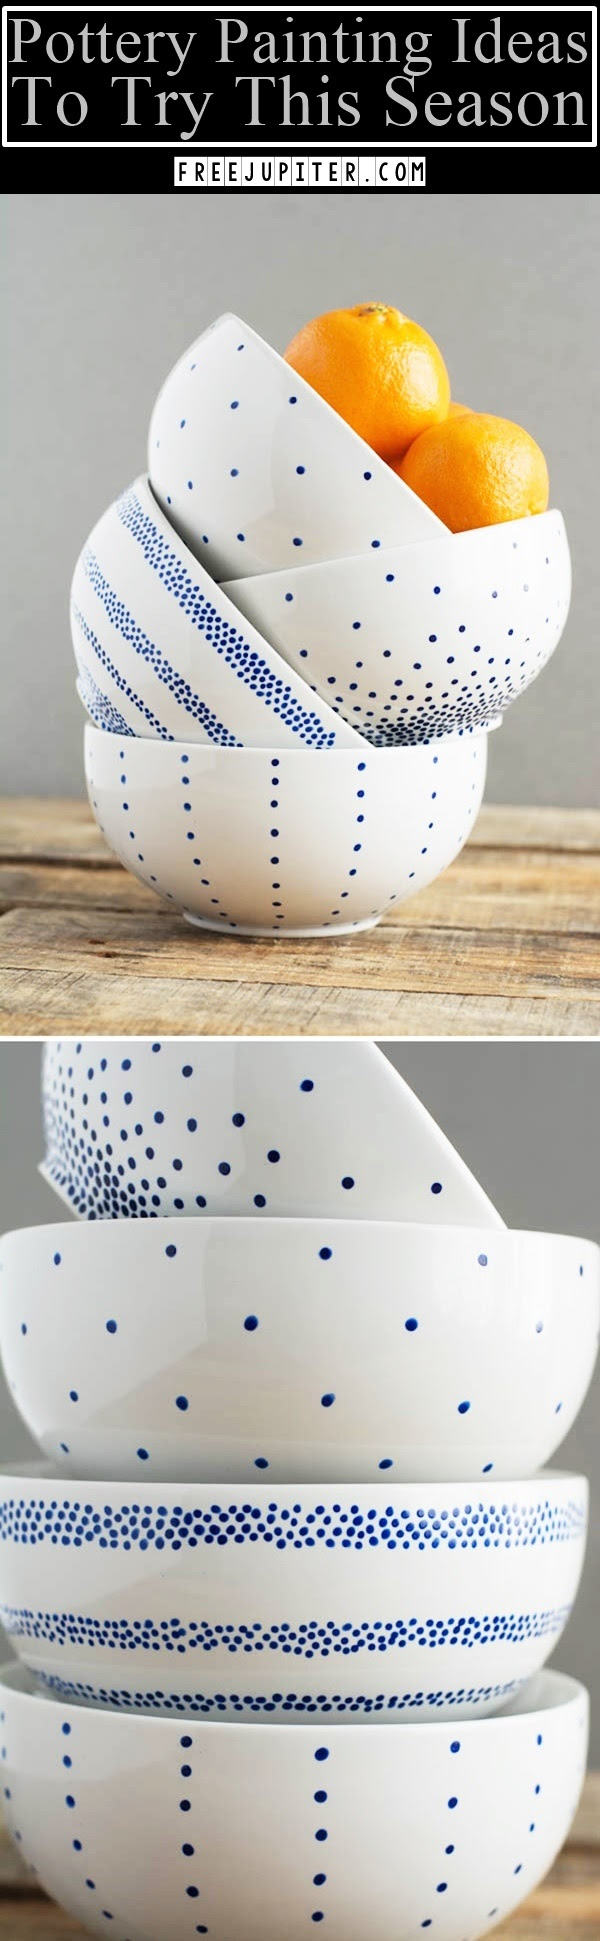 Pottery And Clay Project